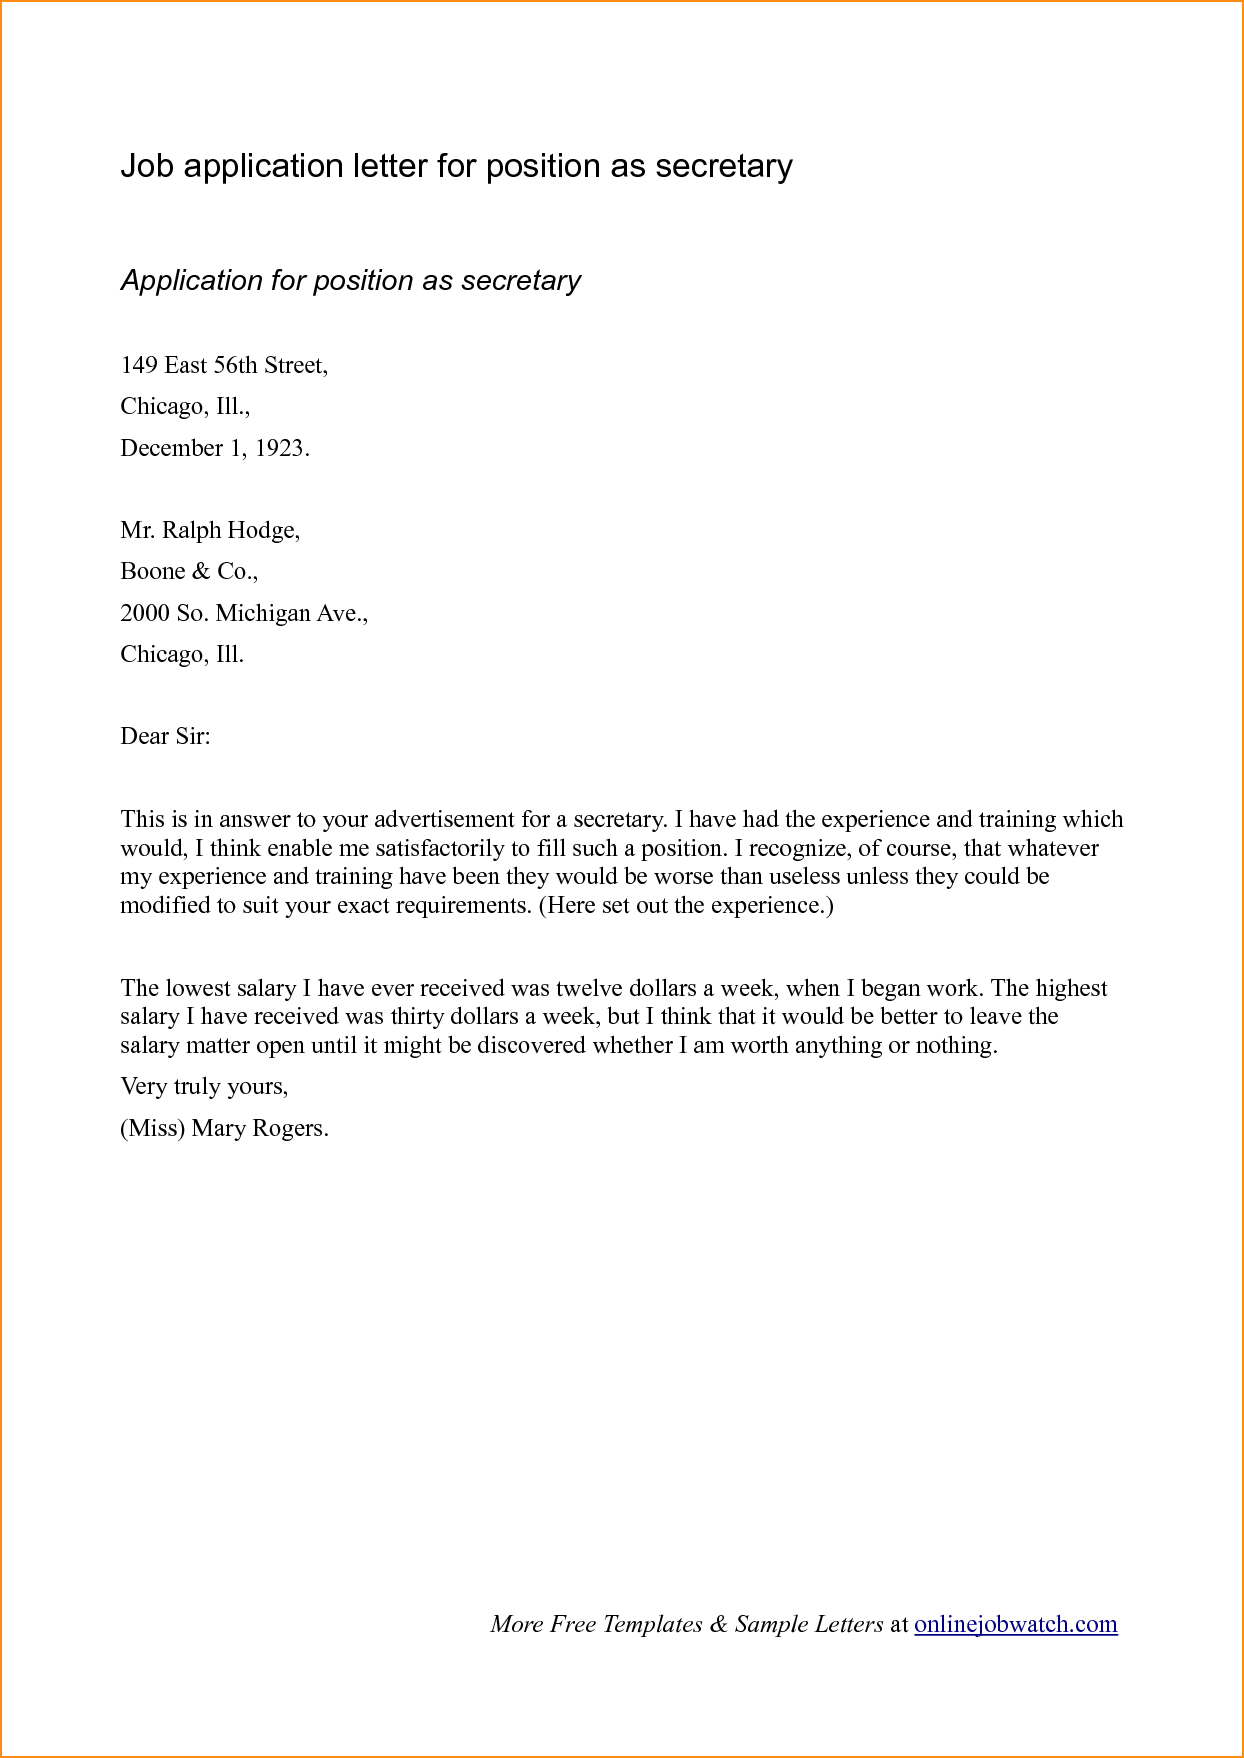 Letter sample eastern illinois university cover example job letter sample eastern illinois university cover example job application letters templates madrichimfo Choice Image